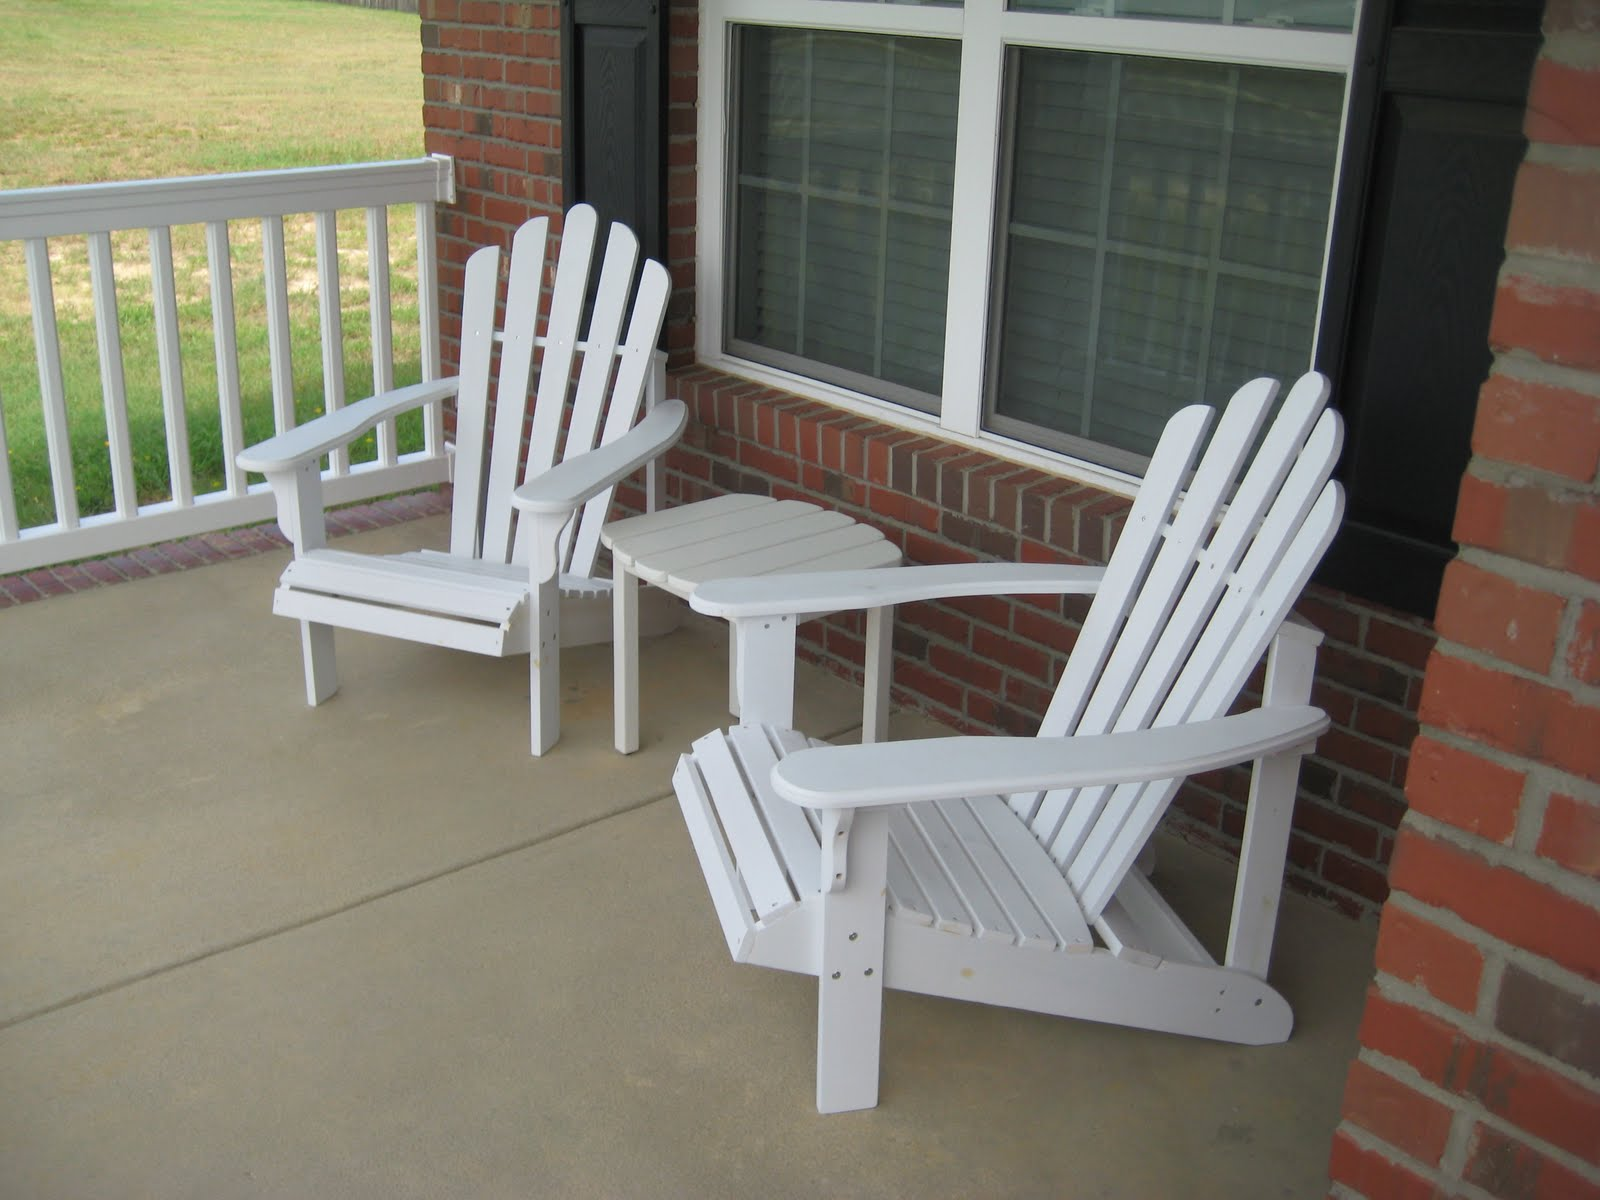 Wooden Porch Chairs Office Chair Booster Seat Family Of 3 New Front Furniture